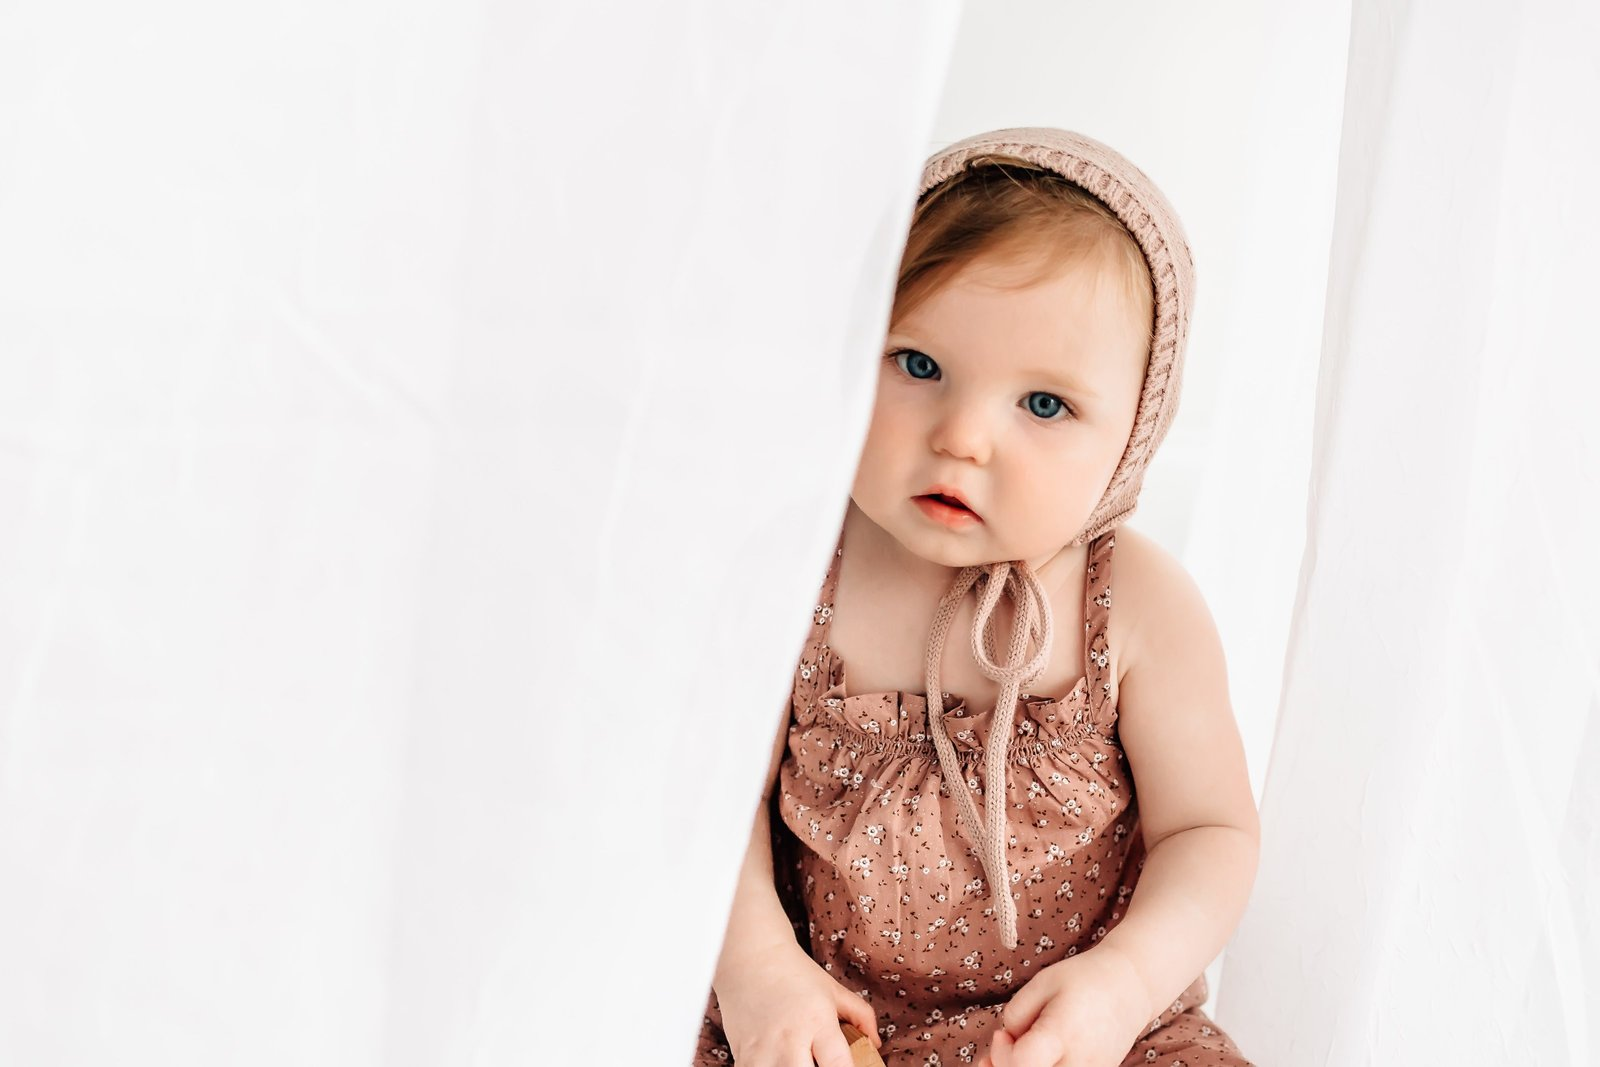 St_Louis_Baby_Photographer_Kelly_Laramore_Photography_29